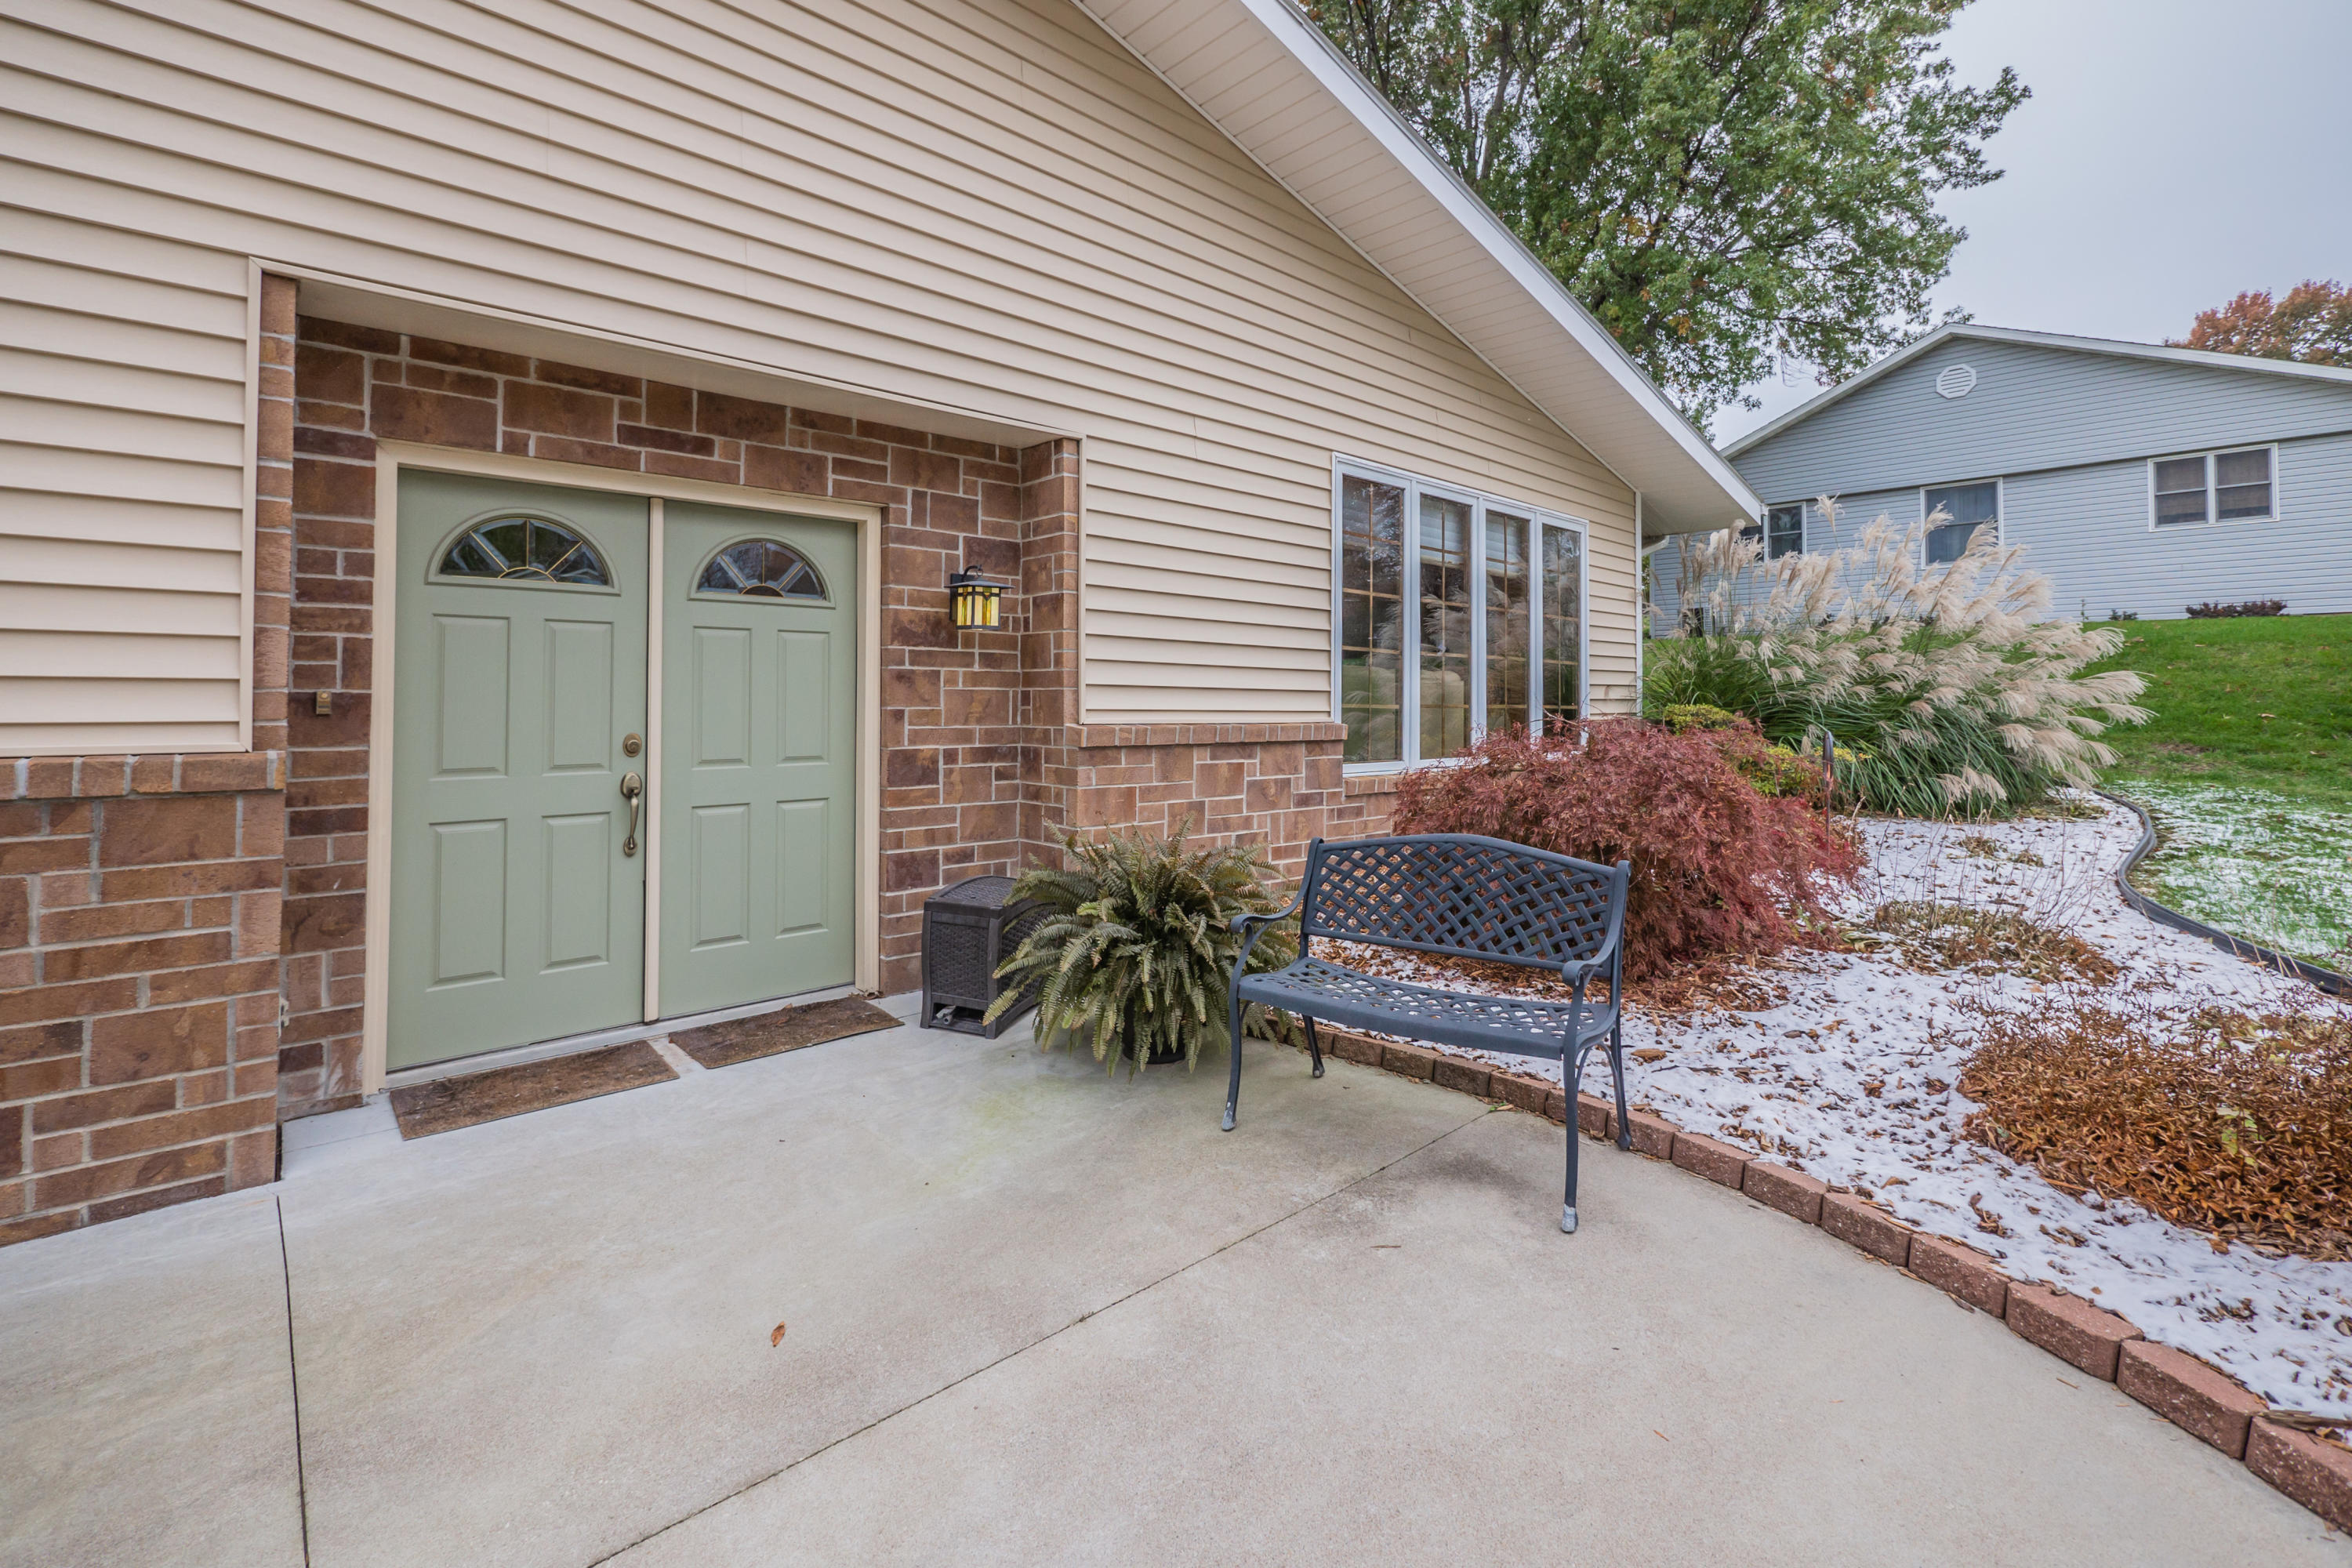 1014 FAUSTIANA DR, Maryville, Missouri 64468, 3 Bedrooms Bedrooms, ,2.5 BathroomsBathrooms,Residential,FAUSTIANA,4587